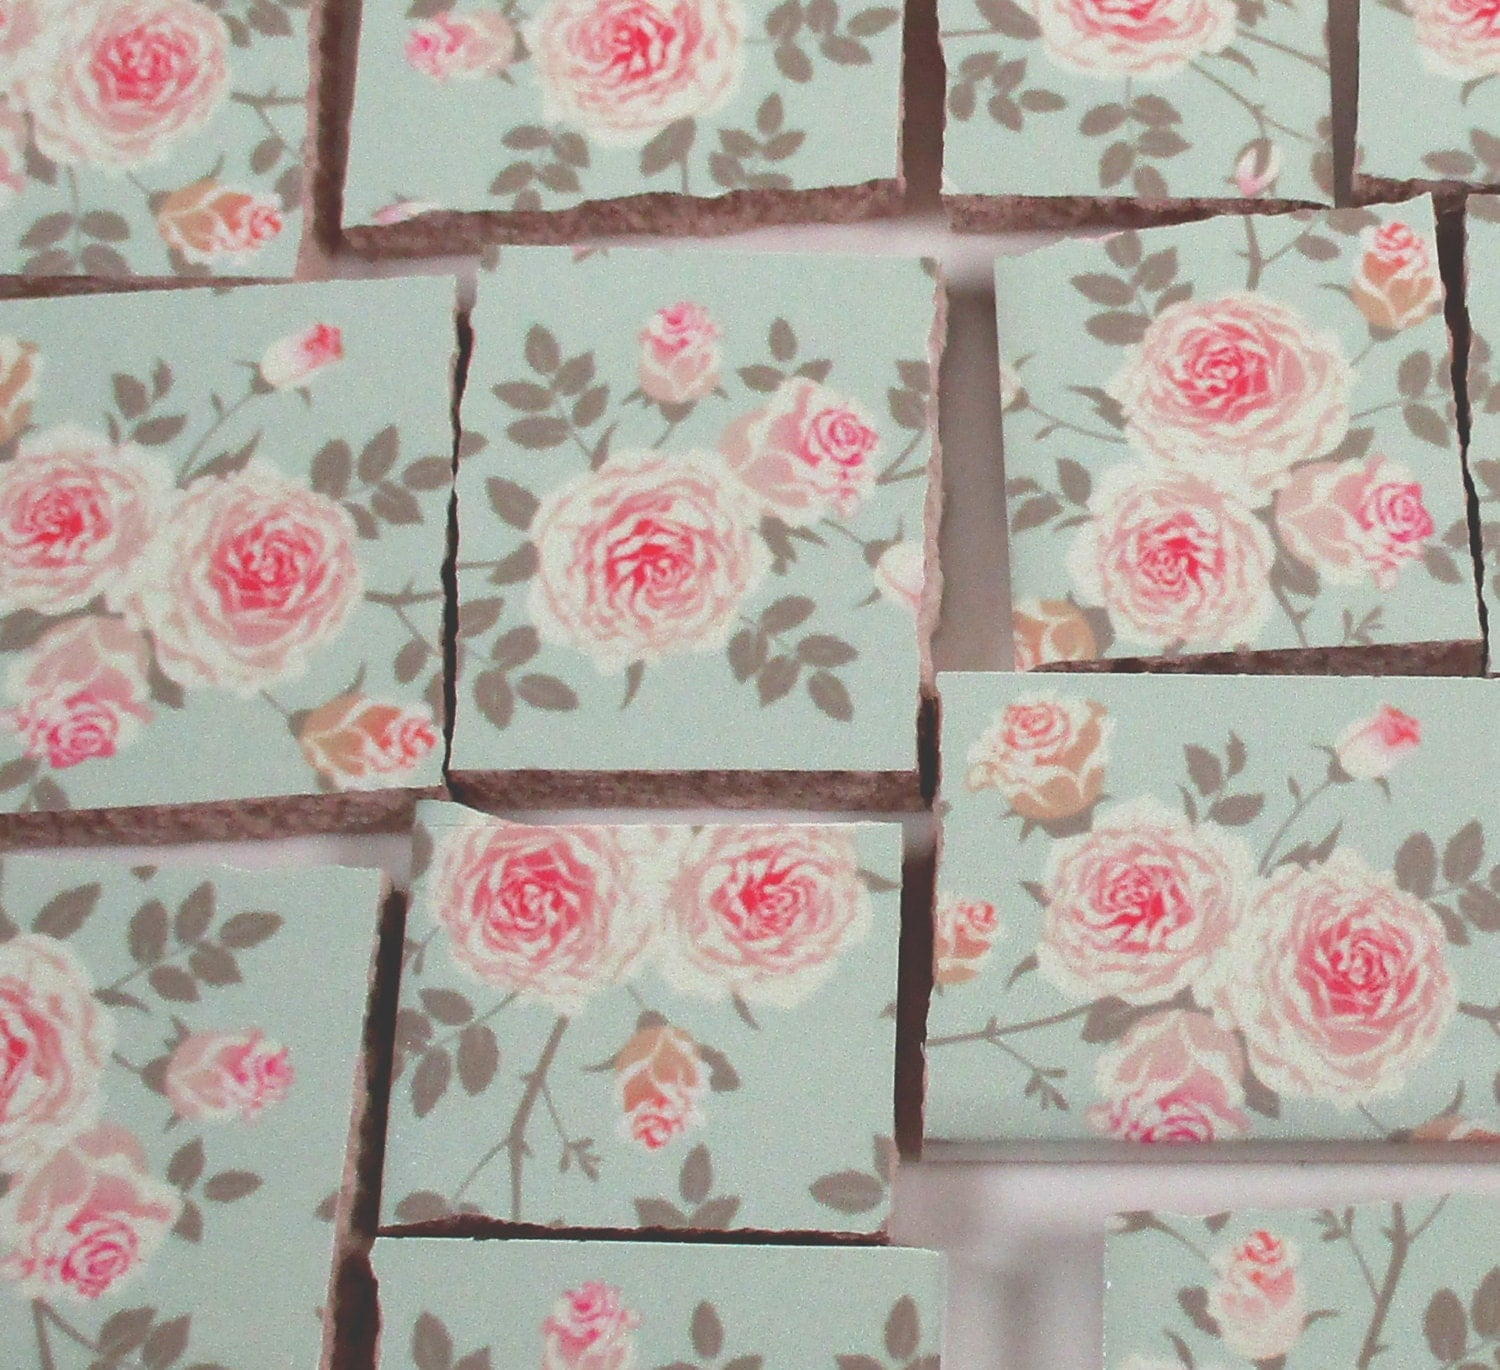 Ceramic mosaic tiles shabby chic pink roses flowers for Shabby chic wall tiles